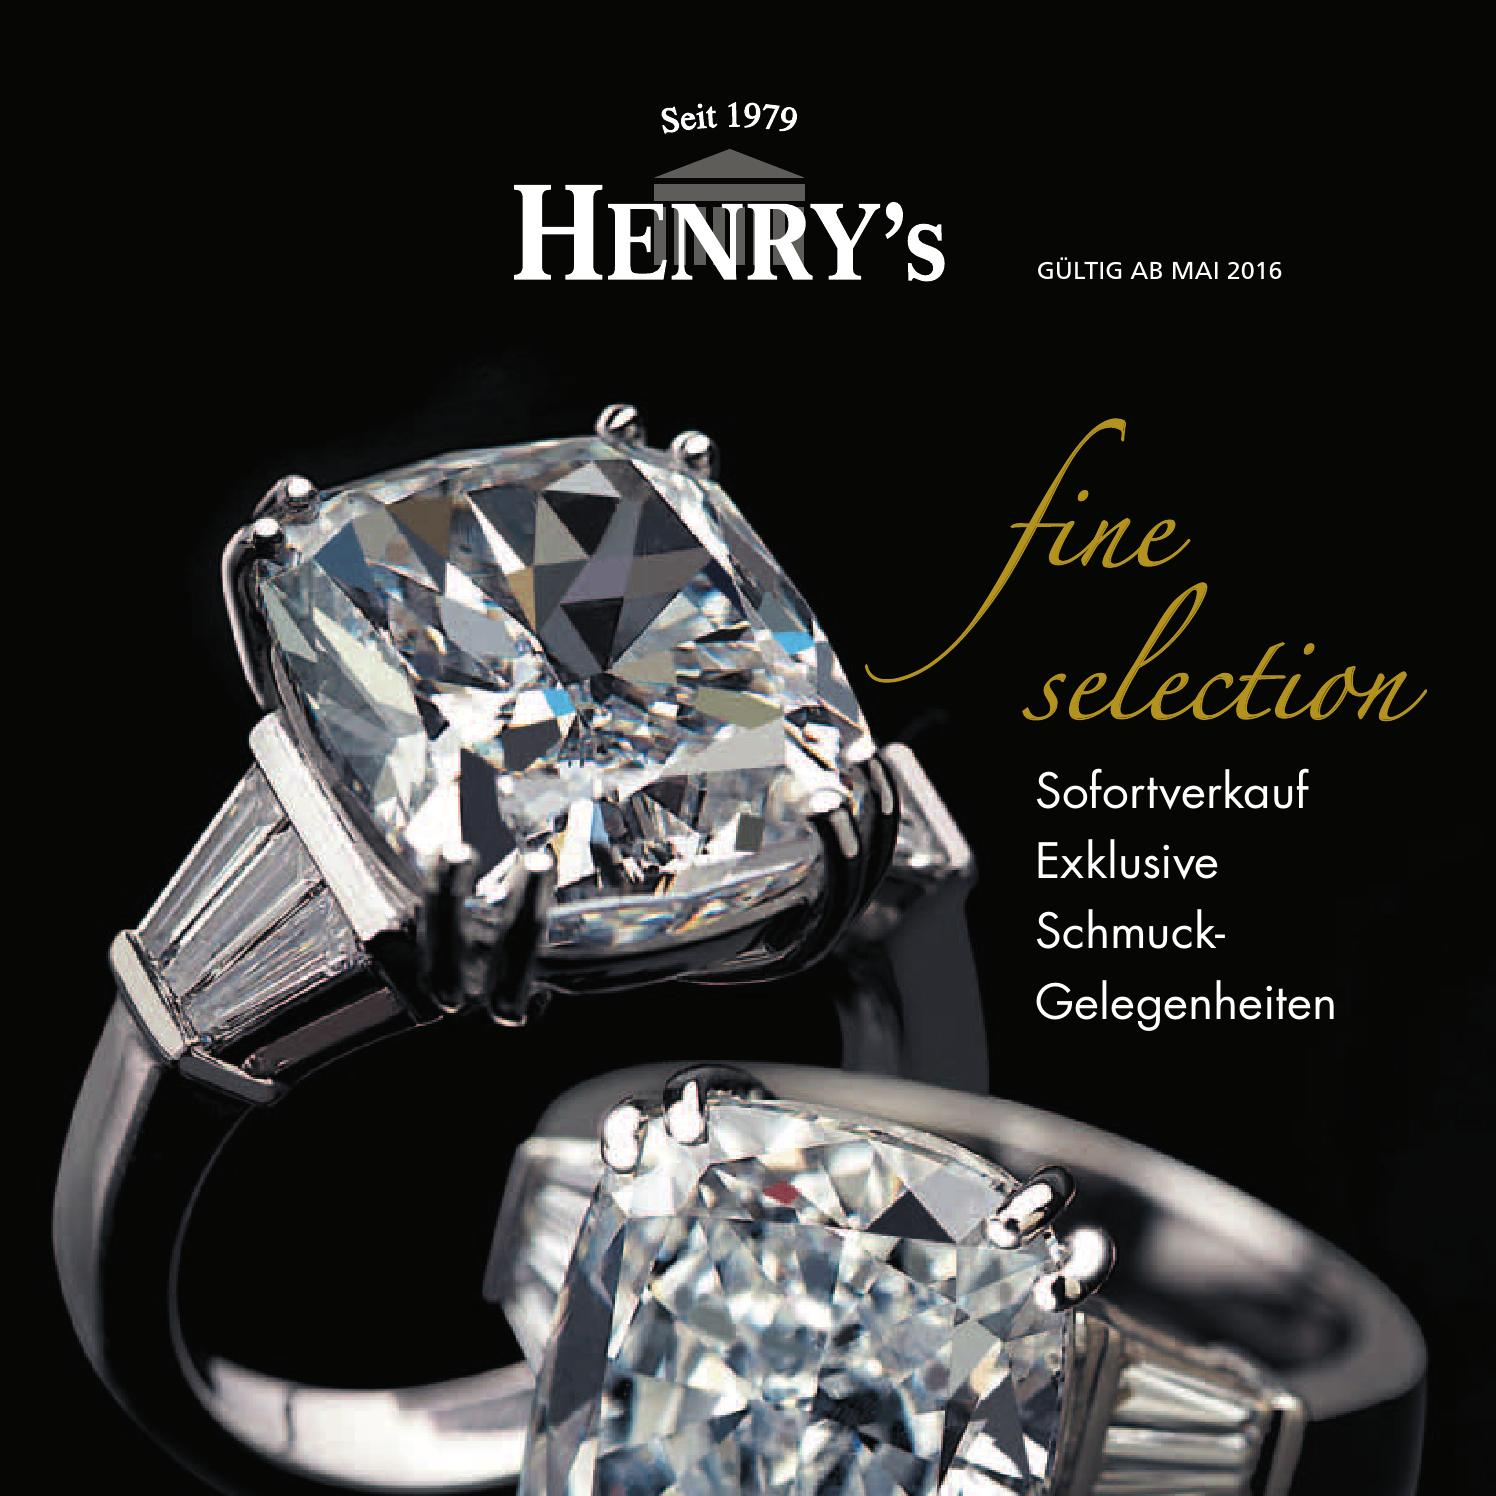 Auktionshaus Henrys Teppiche Henrys Fineselection 06 2016 By Henrys Auktionshaus Issuu